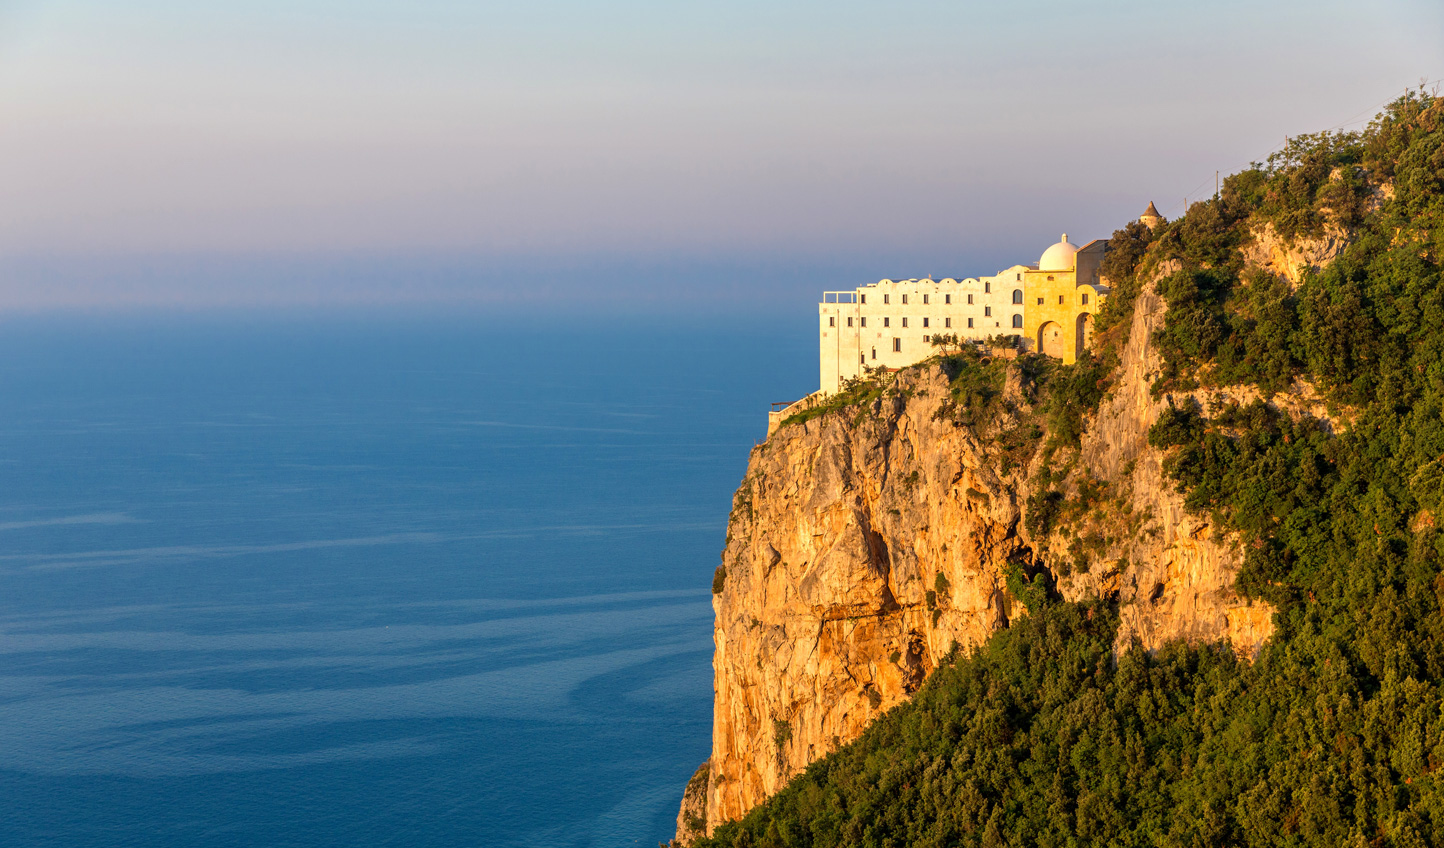 Hole up in total luxury at Monastero Santa Rosa